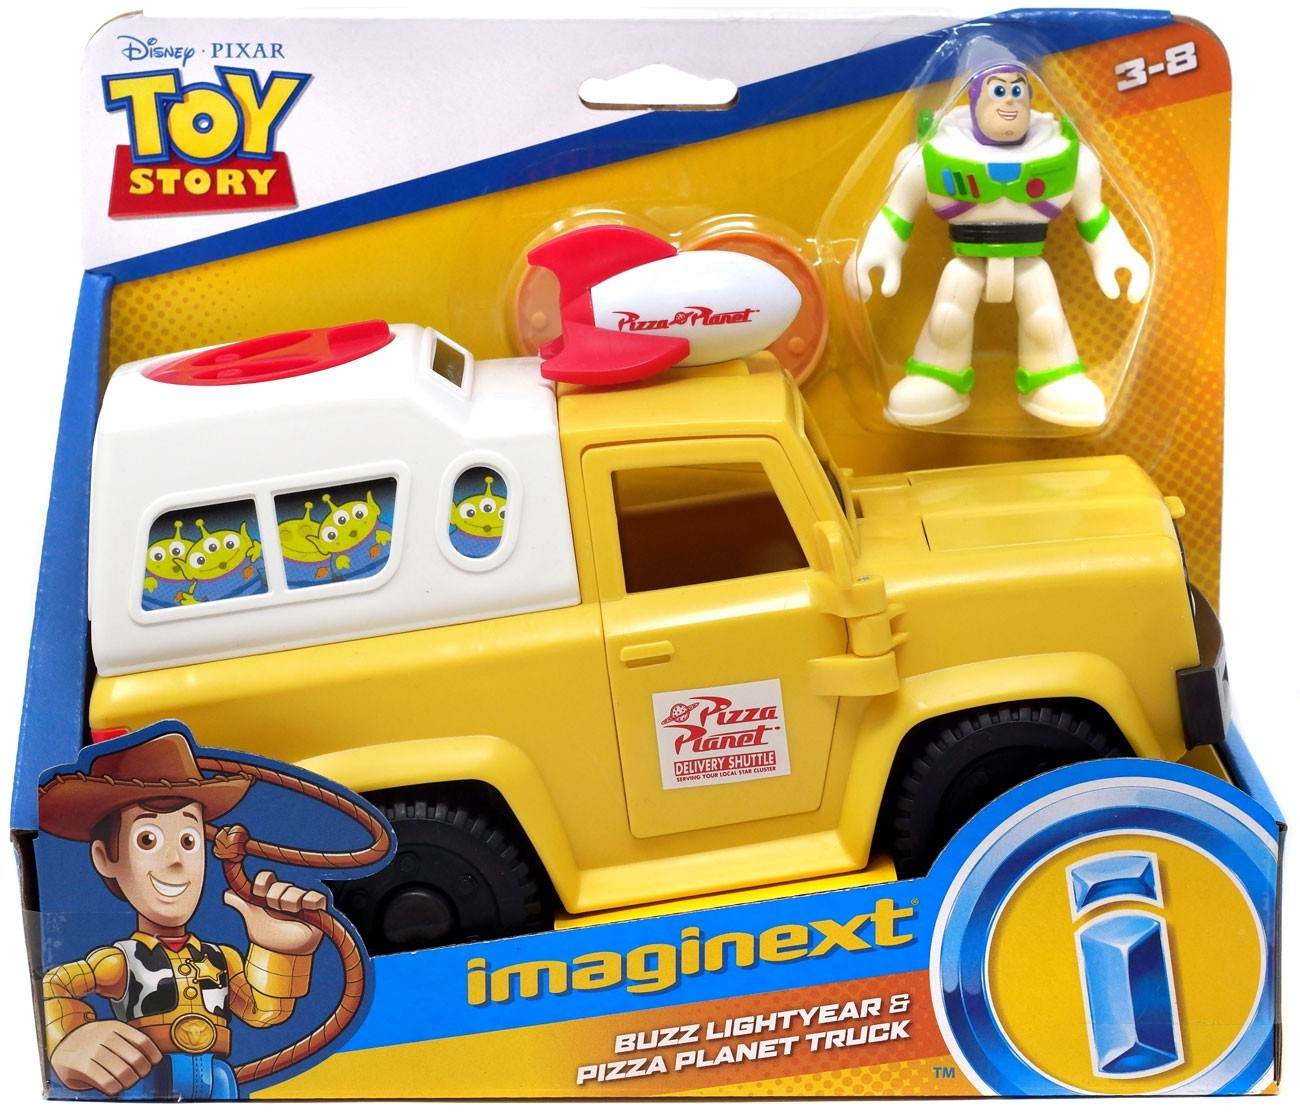 TOY STORY 4 PIZZA PLANET TRUCK